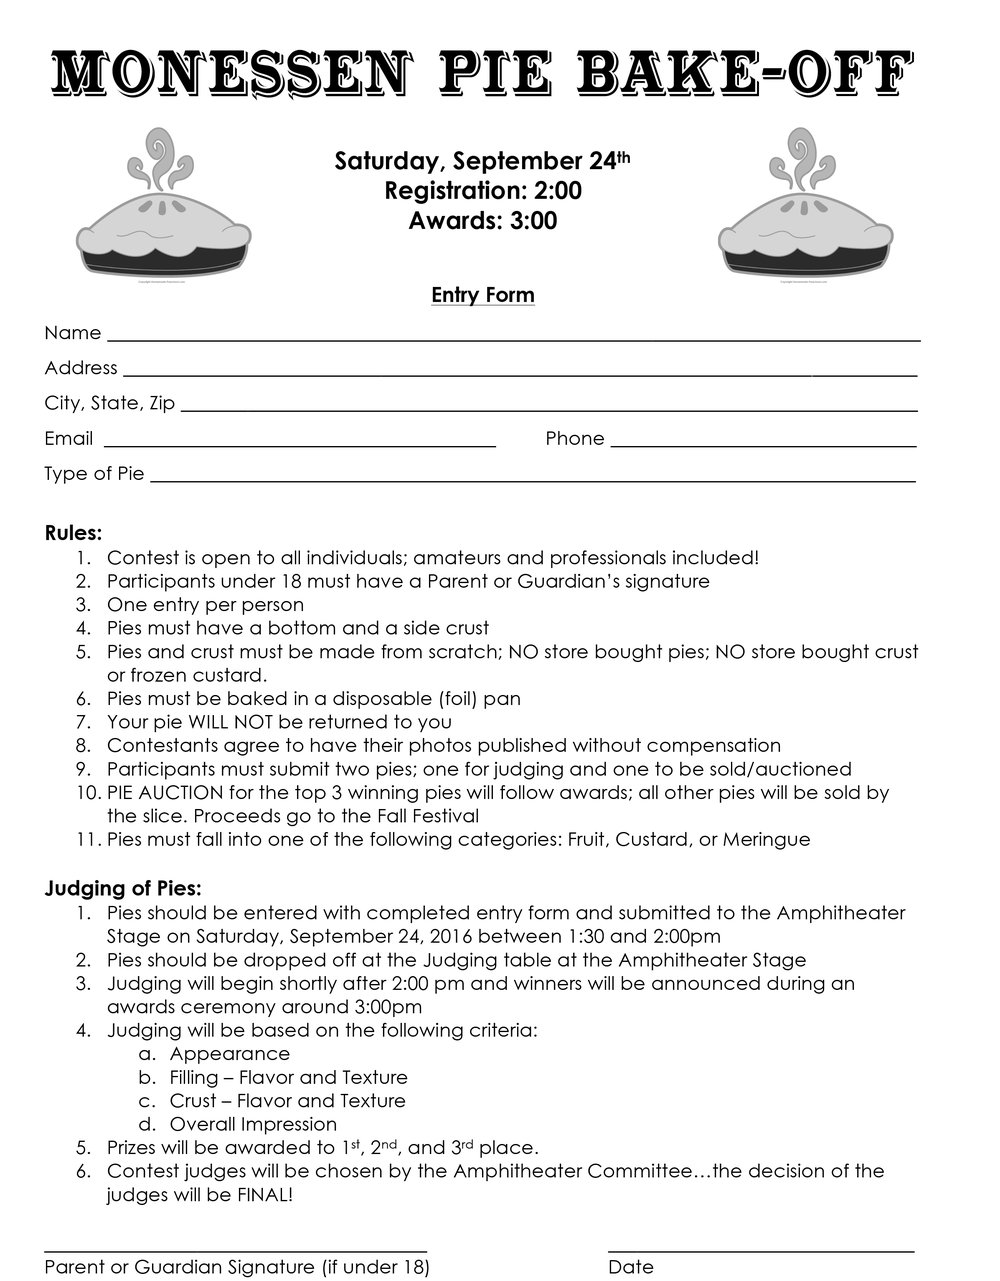 Print this form out (it is saved as a jpg.) and fill it out! Forms will also be available at the event.